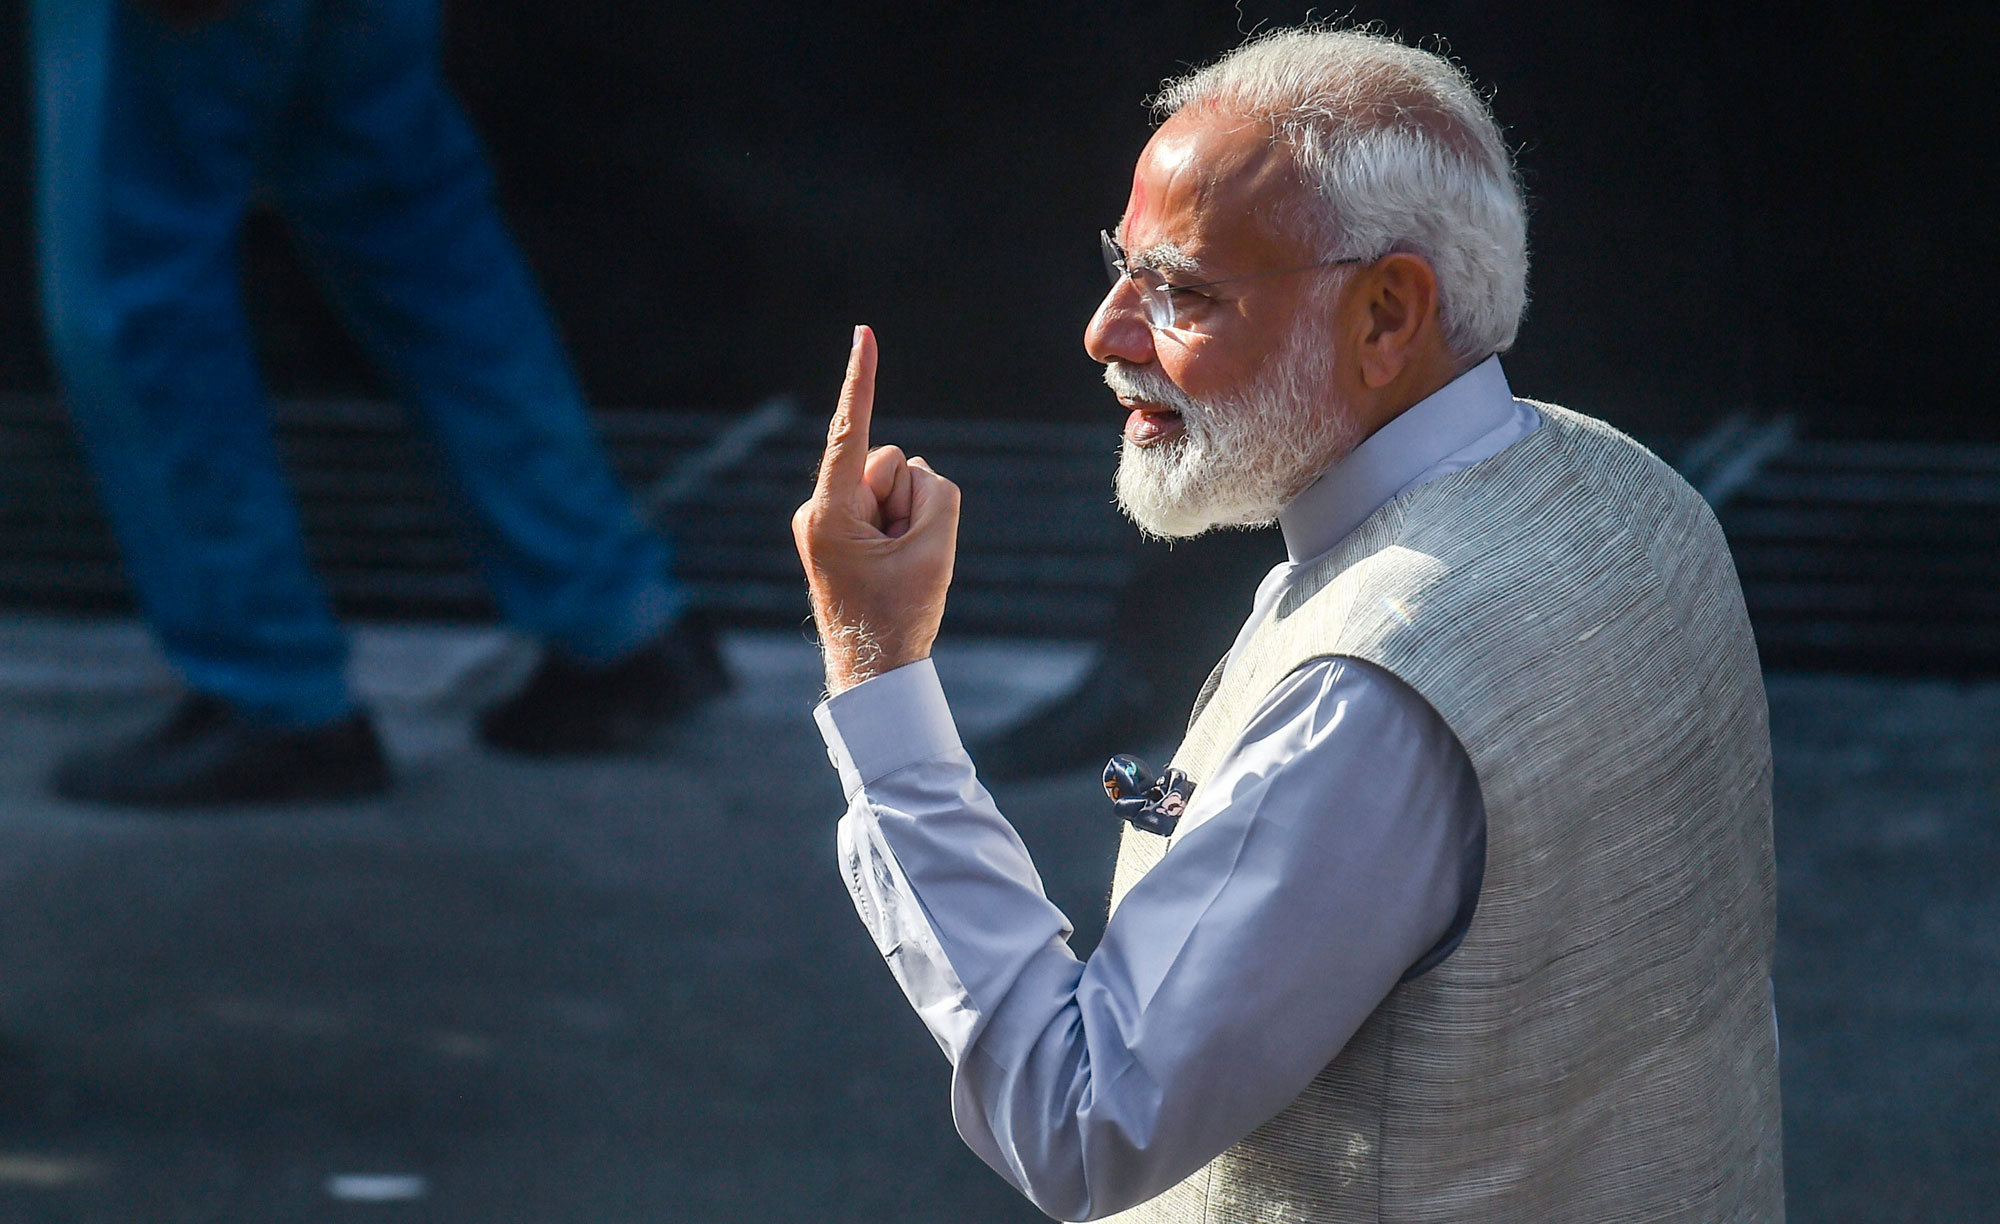 While Bilkis cast her vote in Dahod on Tuesday, Prime Minister Narendra Modi did so in Ahmedabad. Modi was Gujarat chief minister when the riots took place in 2002.